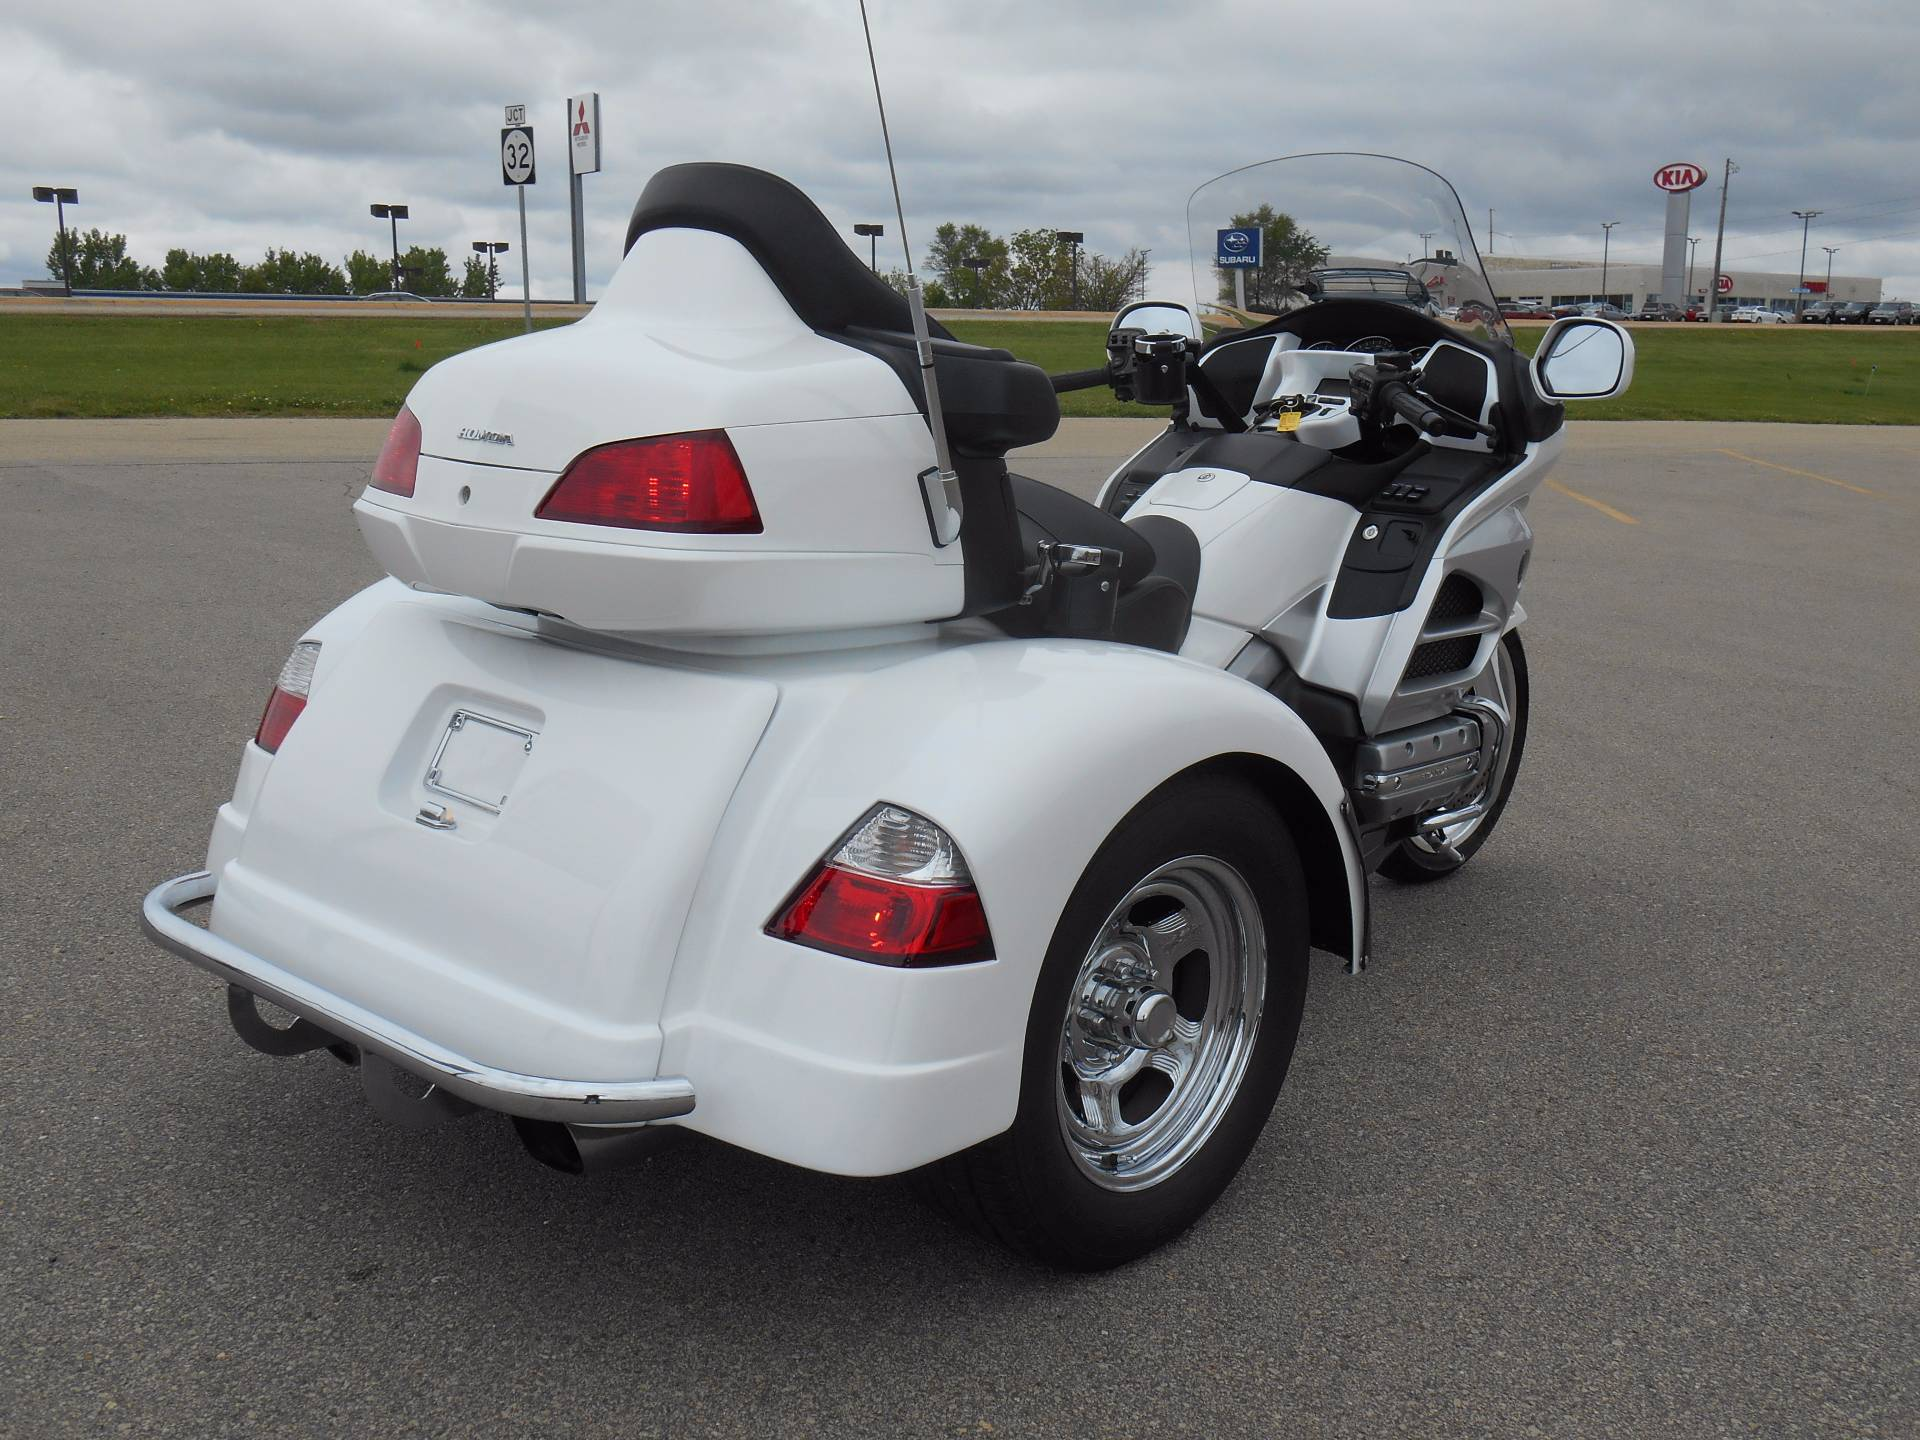 2012 Honda Gold Wing Motor trike in Dubuque, Iowa